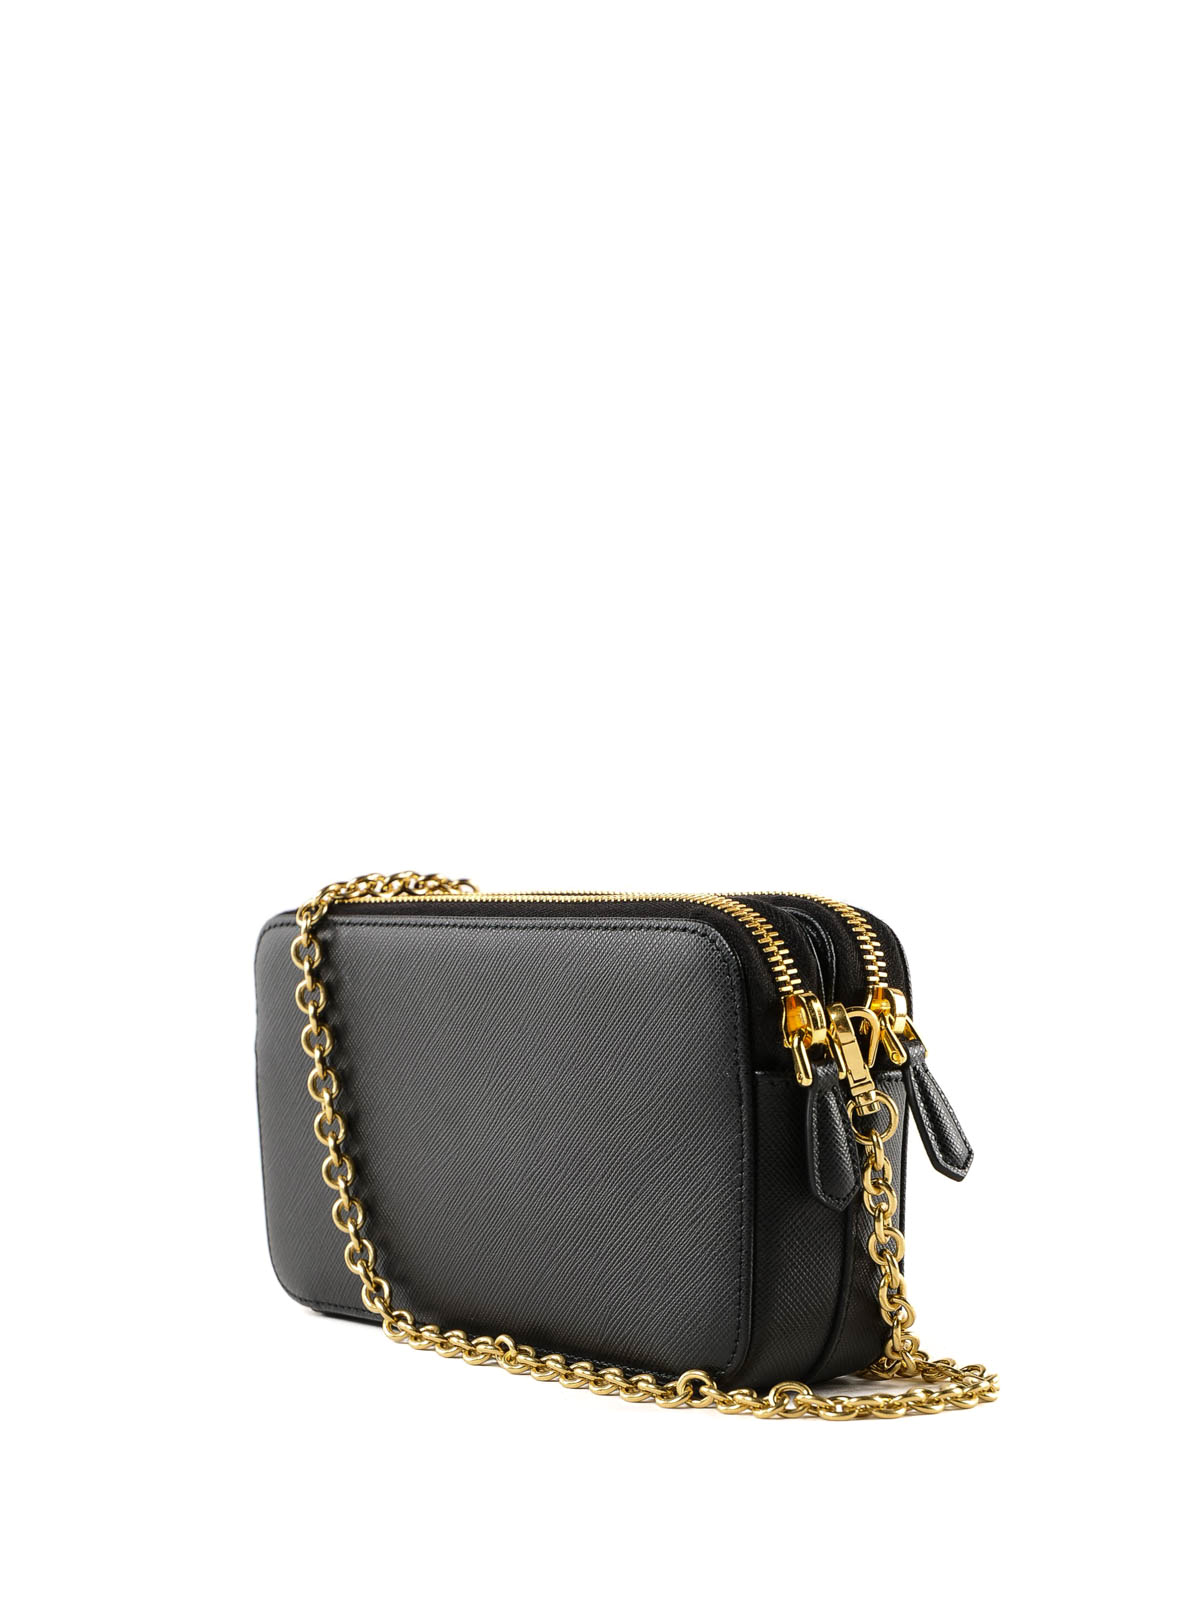 36acb881a575 iKRIX PRADA: cross body bags - Black saffiano leather mini crossbody